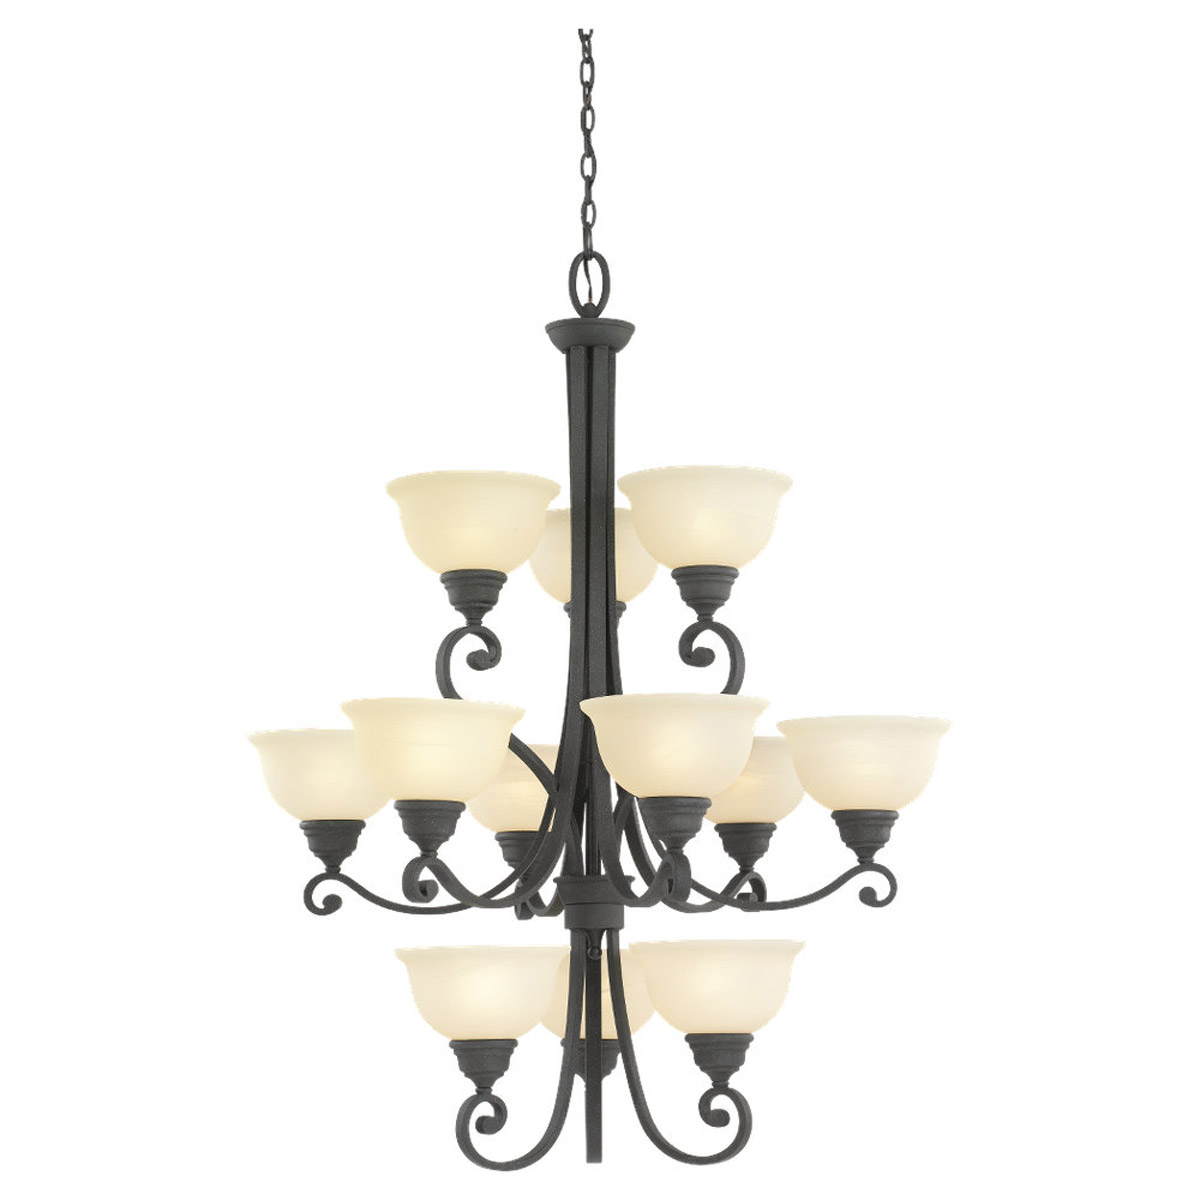 Sea Gull Lighting Serenity 12 Light Chandelier in Weathered Iron 31193-07 photo